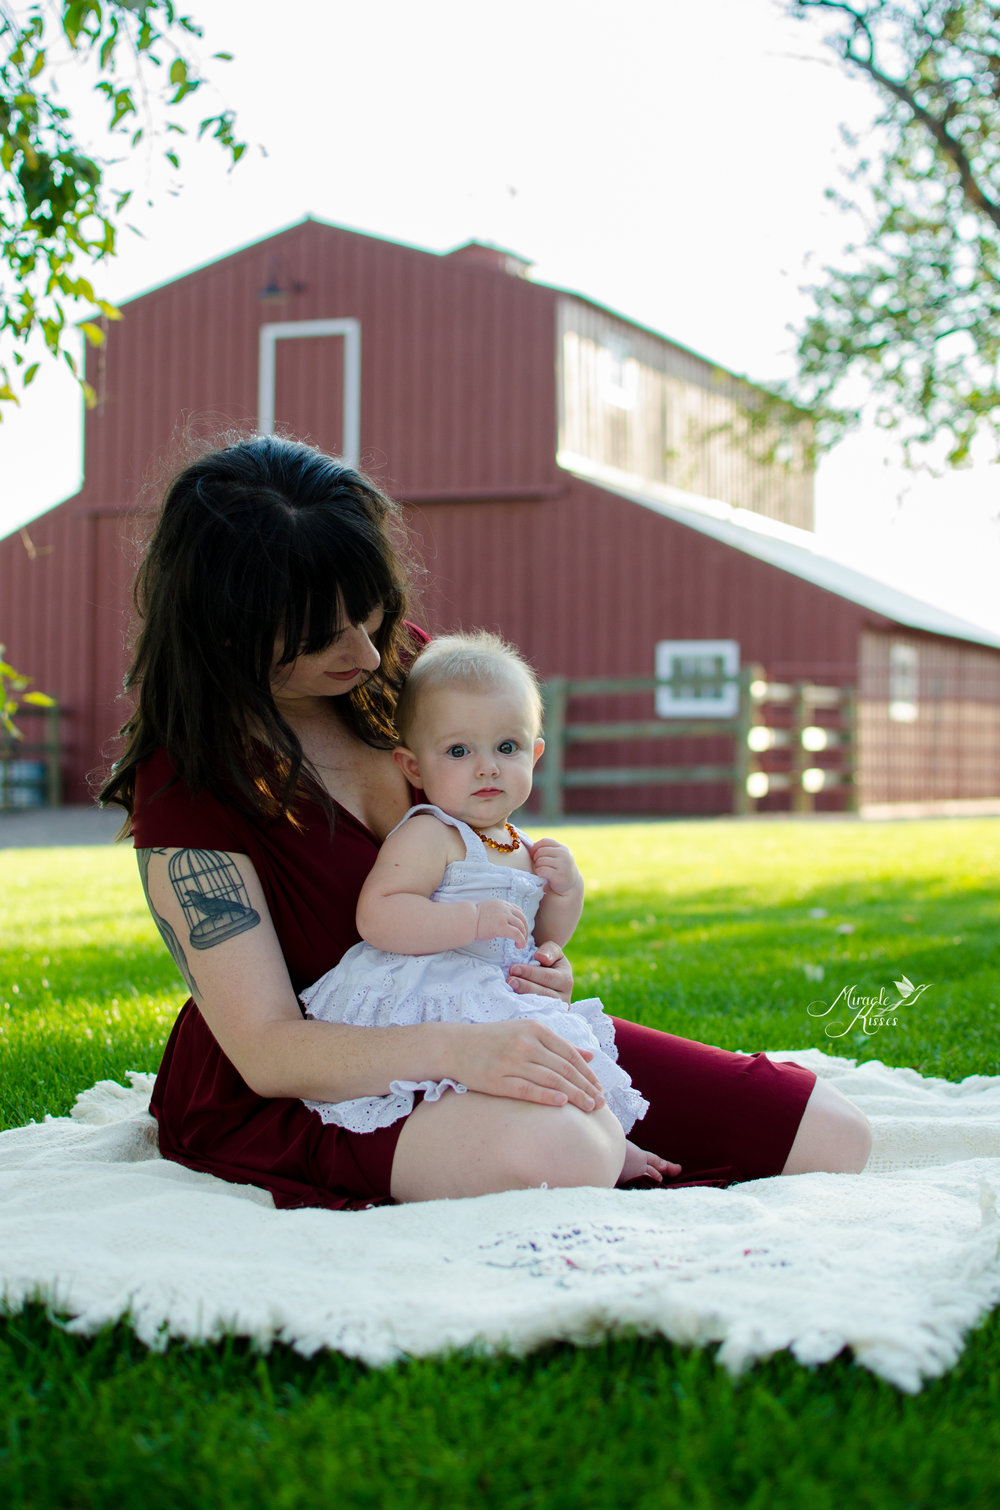 mother daughter photo, lakewood story, play outdoors